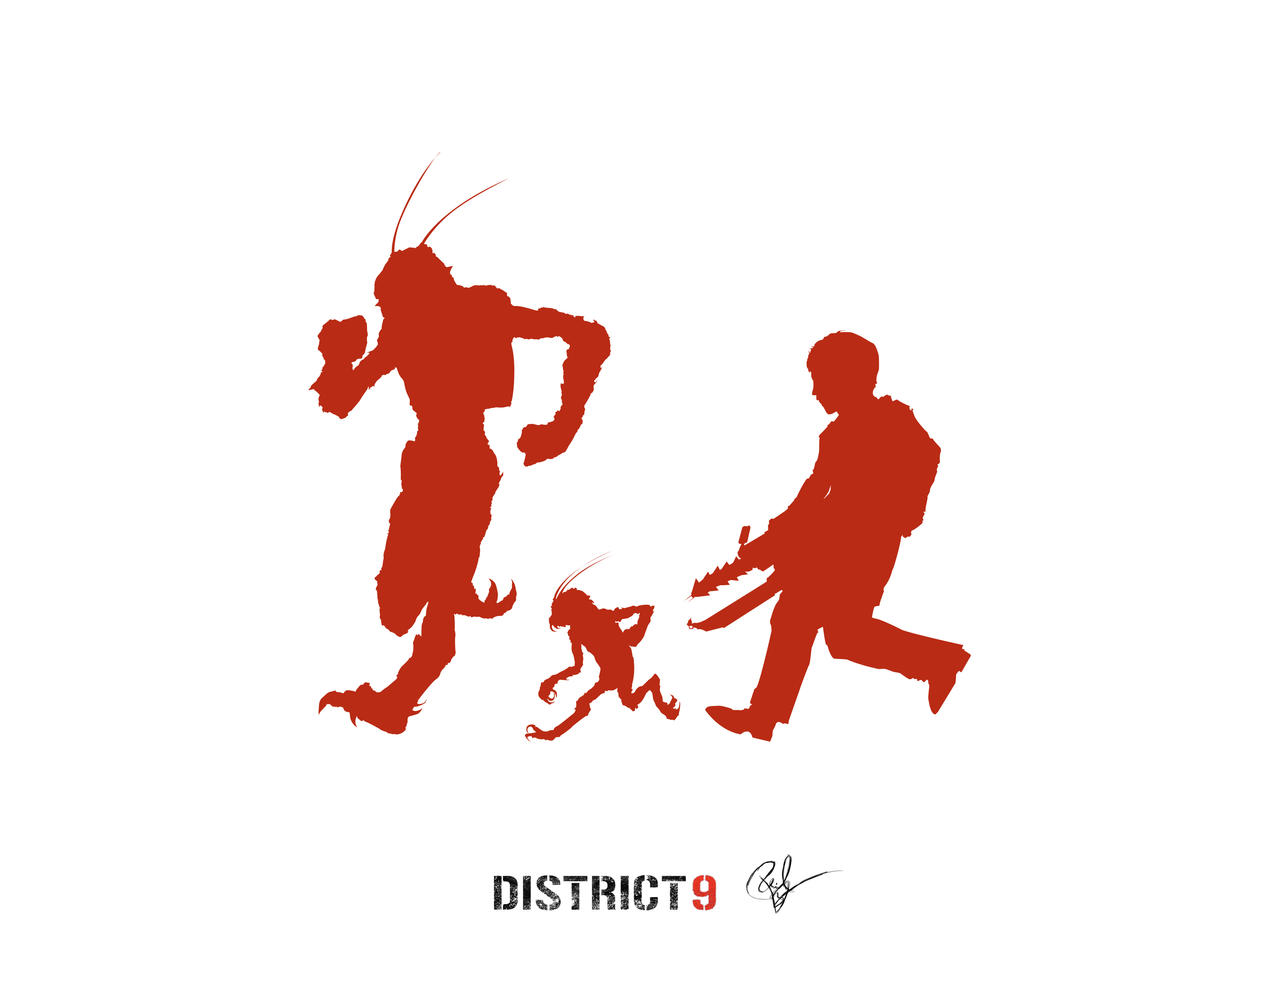 Running from District 9